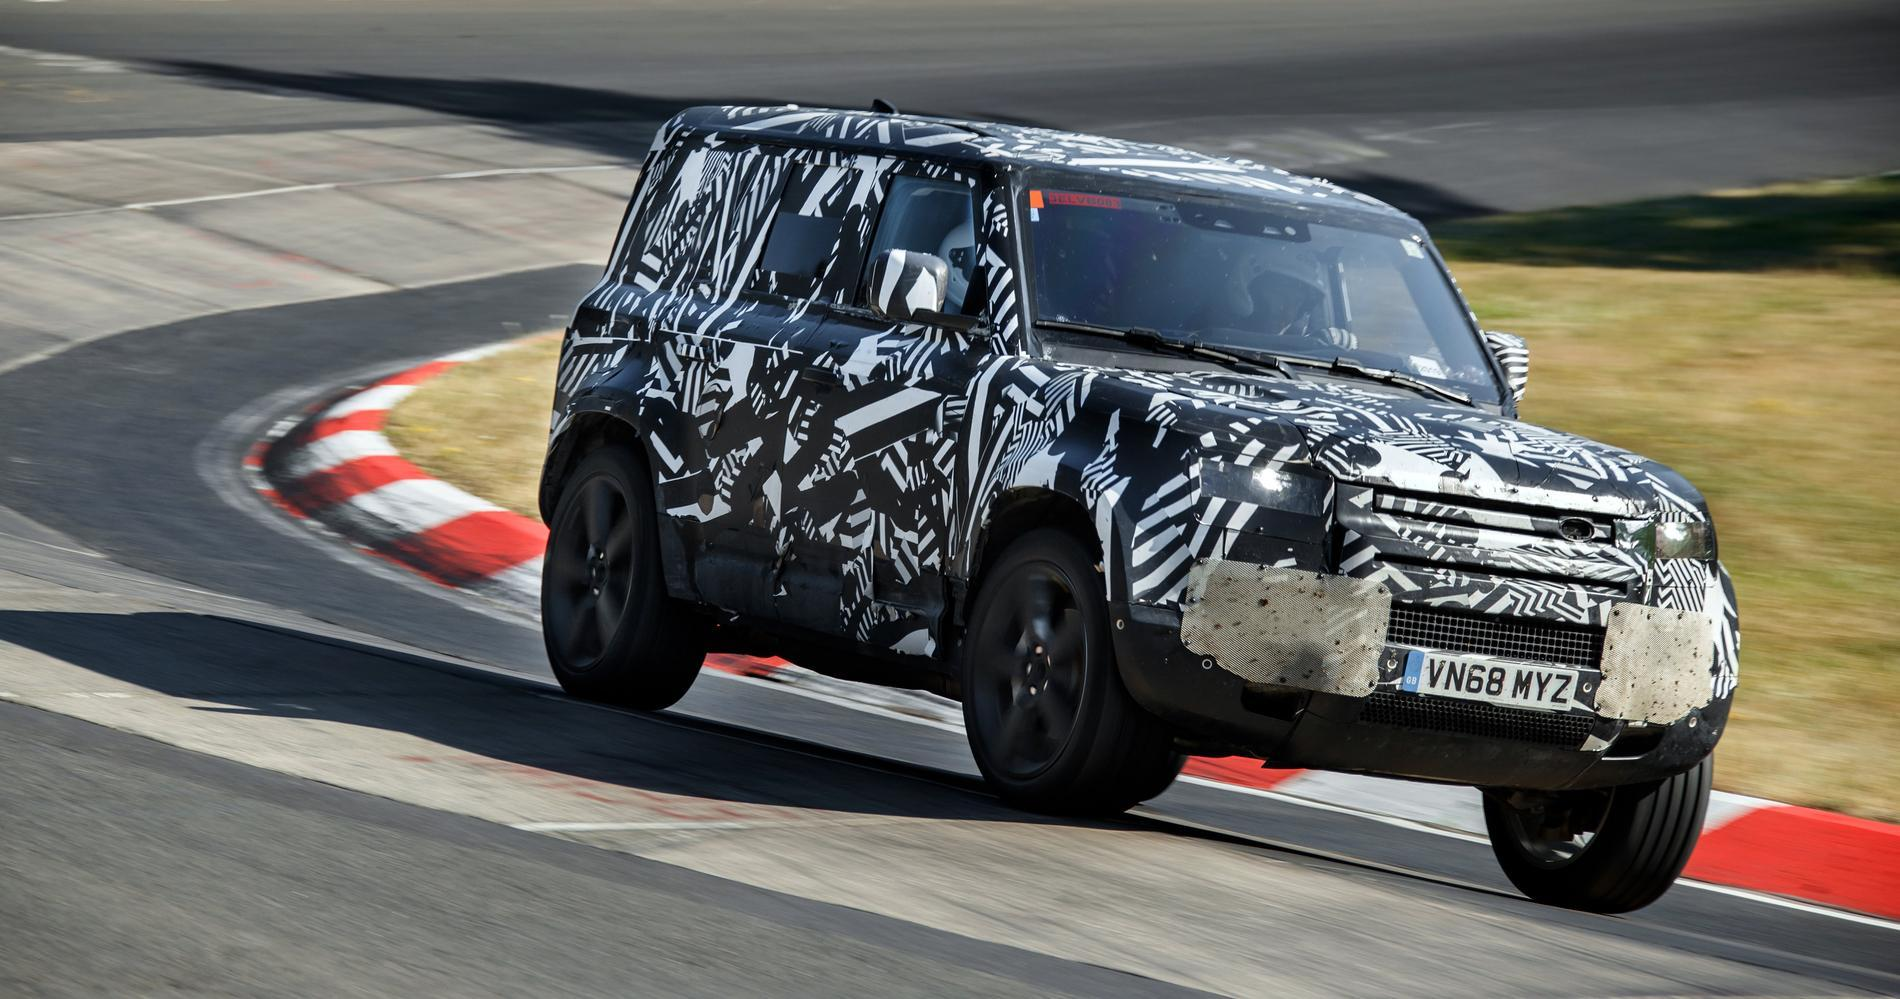 Land Rover Defender nurburgring